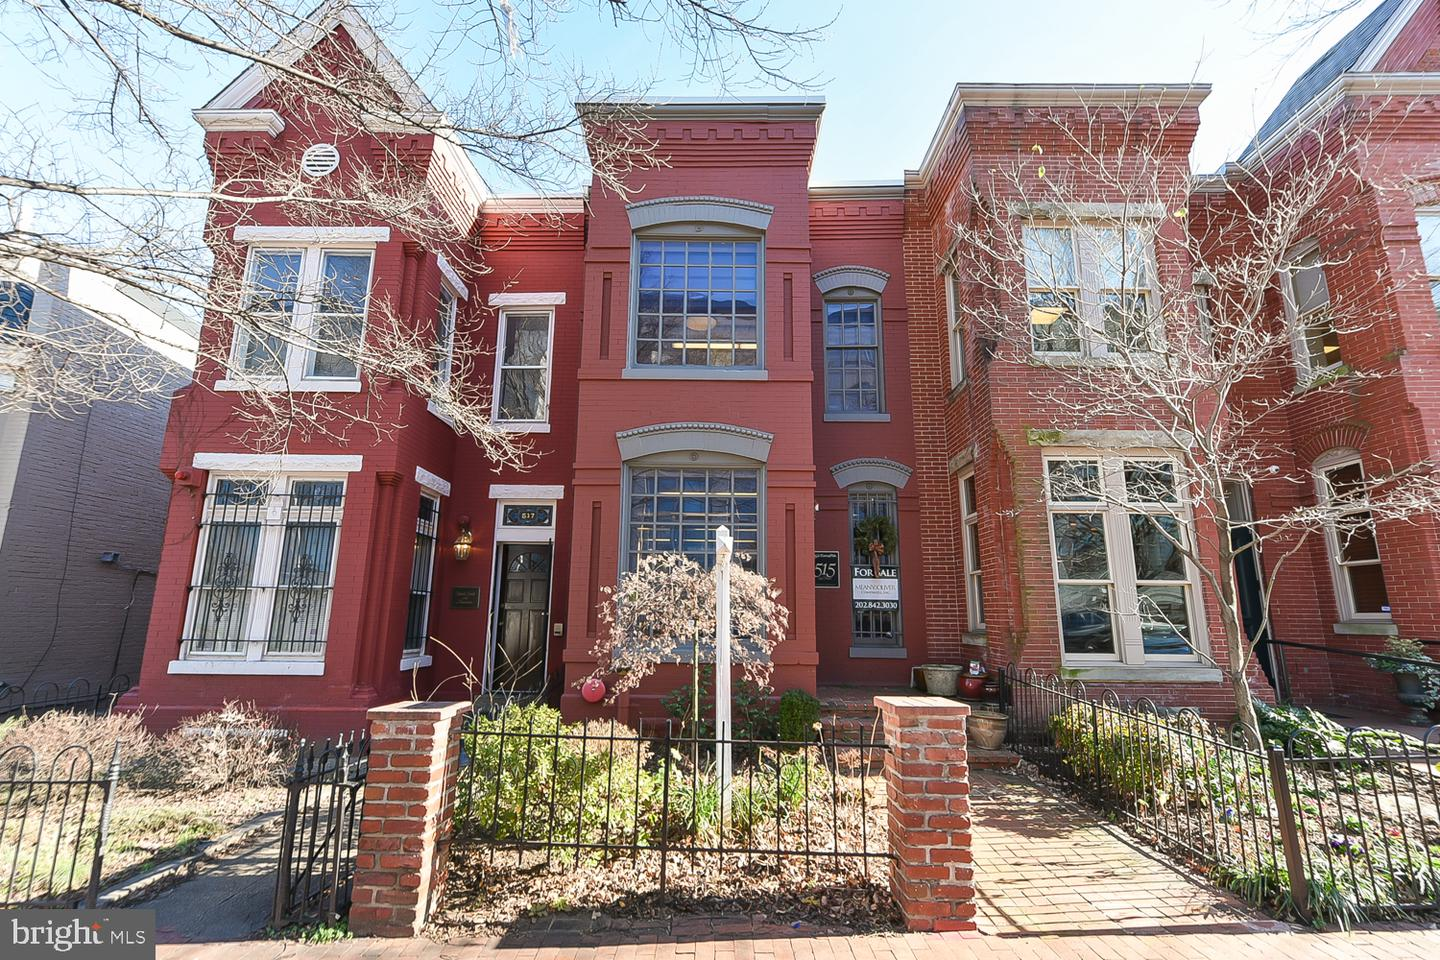 Single Family Home for Sale at 515 2nd St NE Washington, District Of Columbia 20002 United States